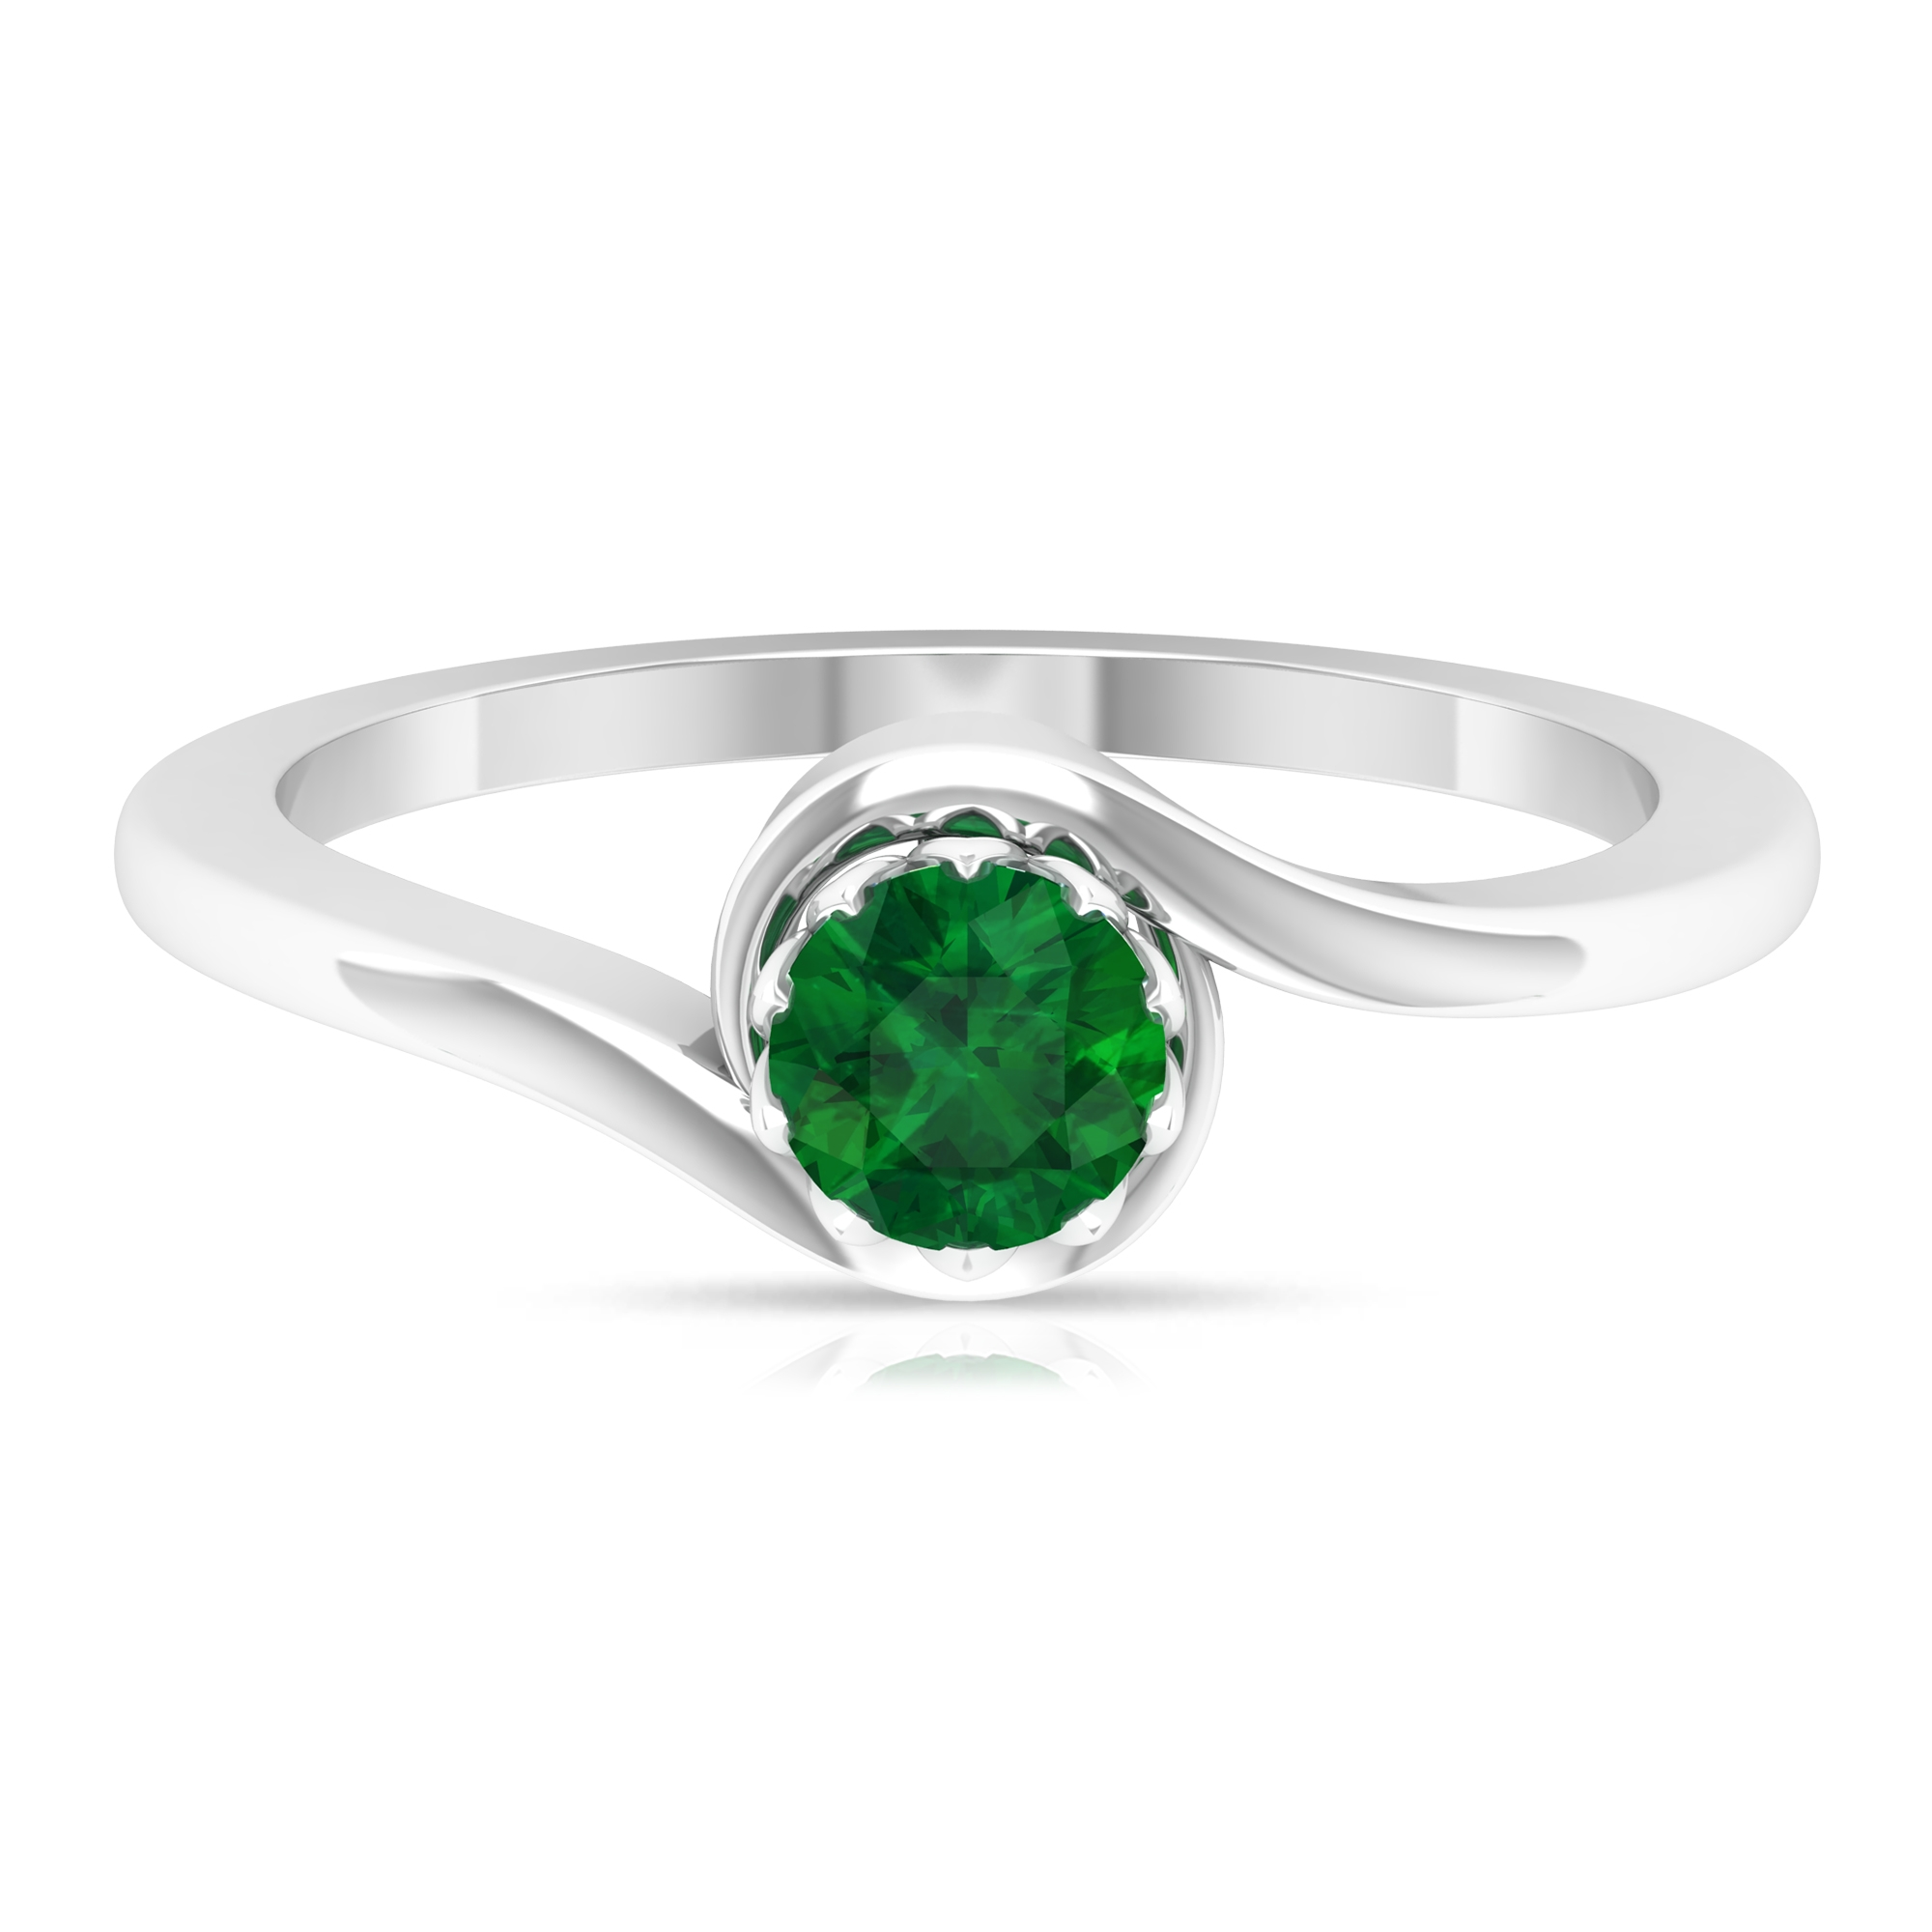 May Birthstone 5 MM Emerald Solitaire Ring in Lotus Basket Setting with Bypass Shank